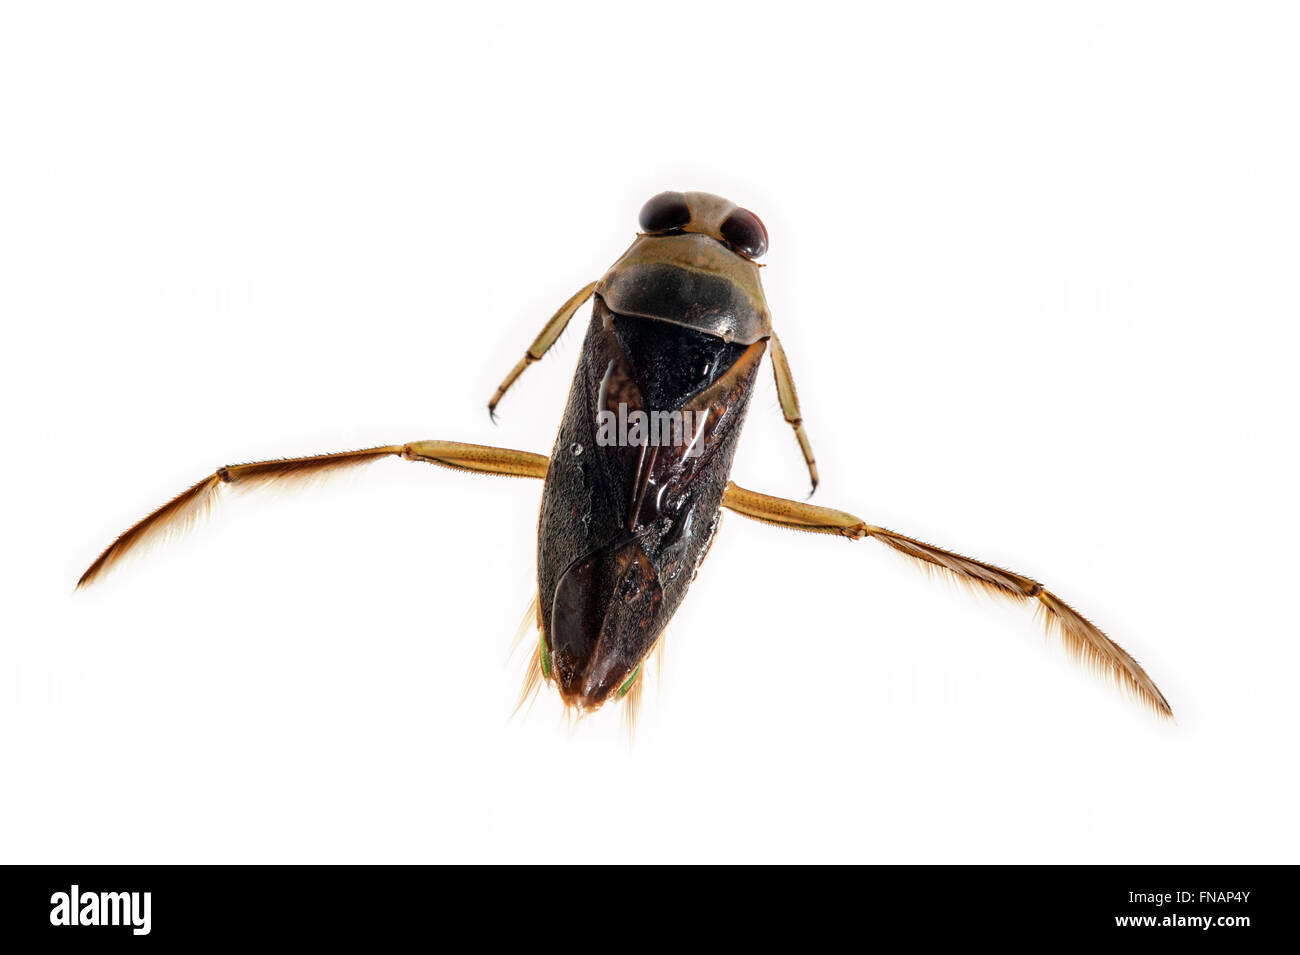 Spotted backswimmer / Mottled backswimmer / Peppered water boatman (Notonecta maculata) on white background - Stock Image